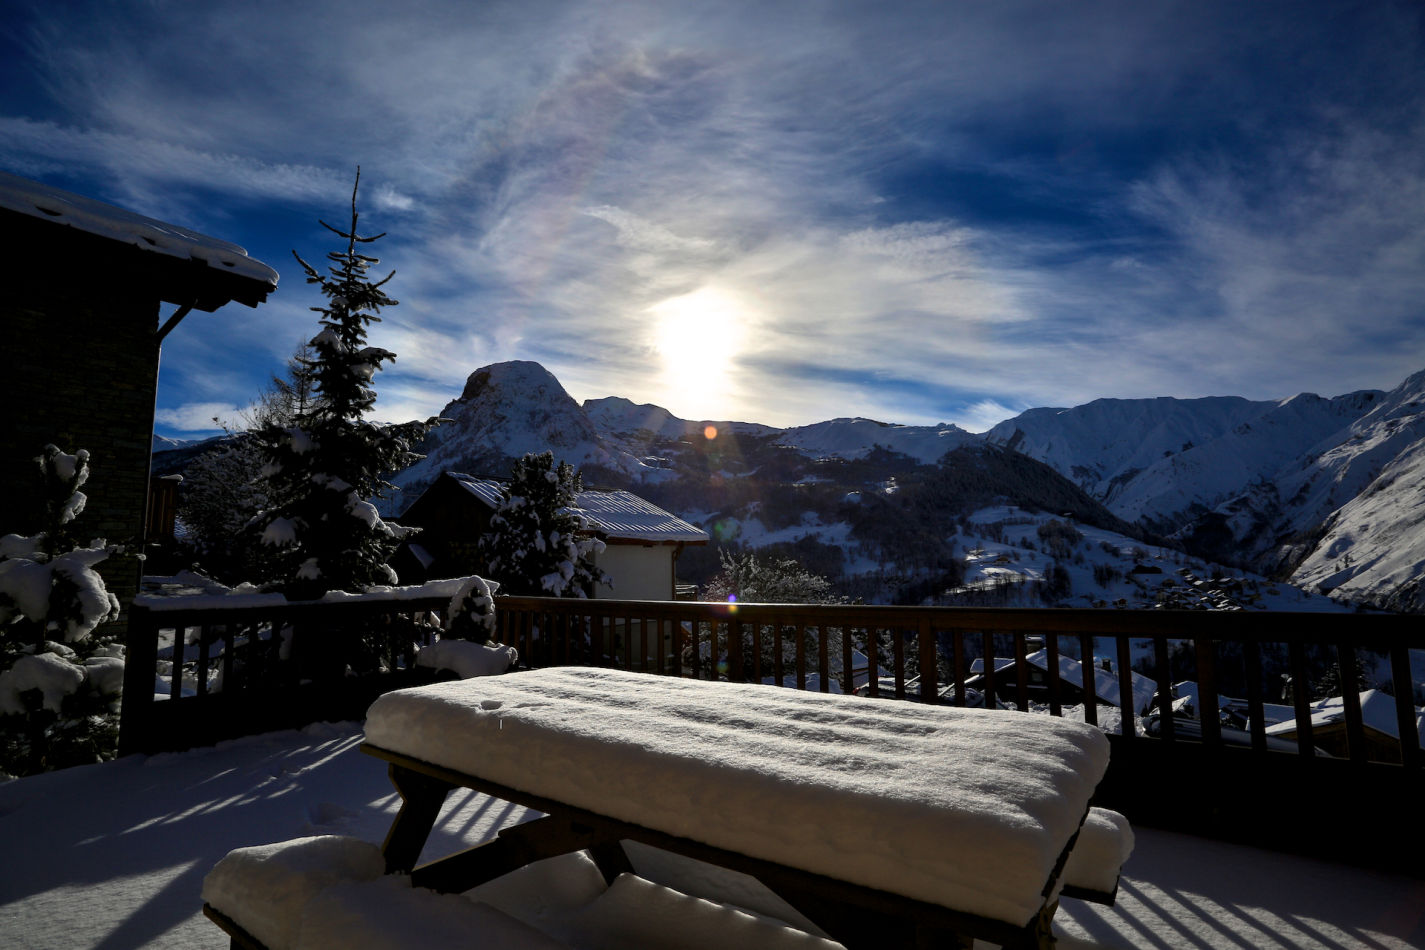 chalet-views-image-77